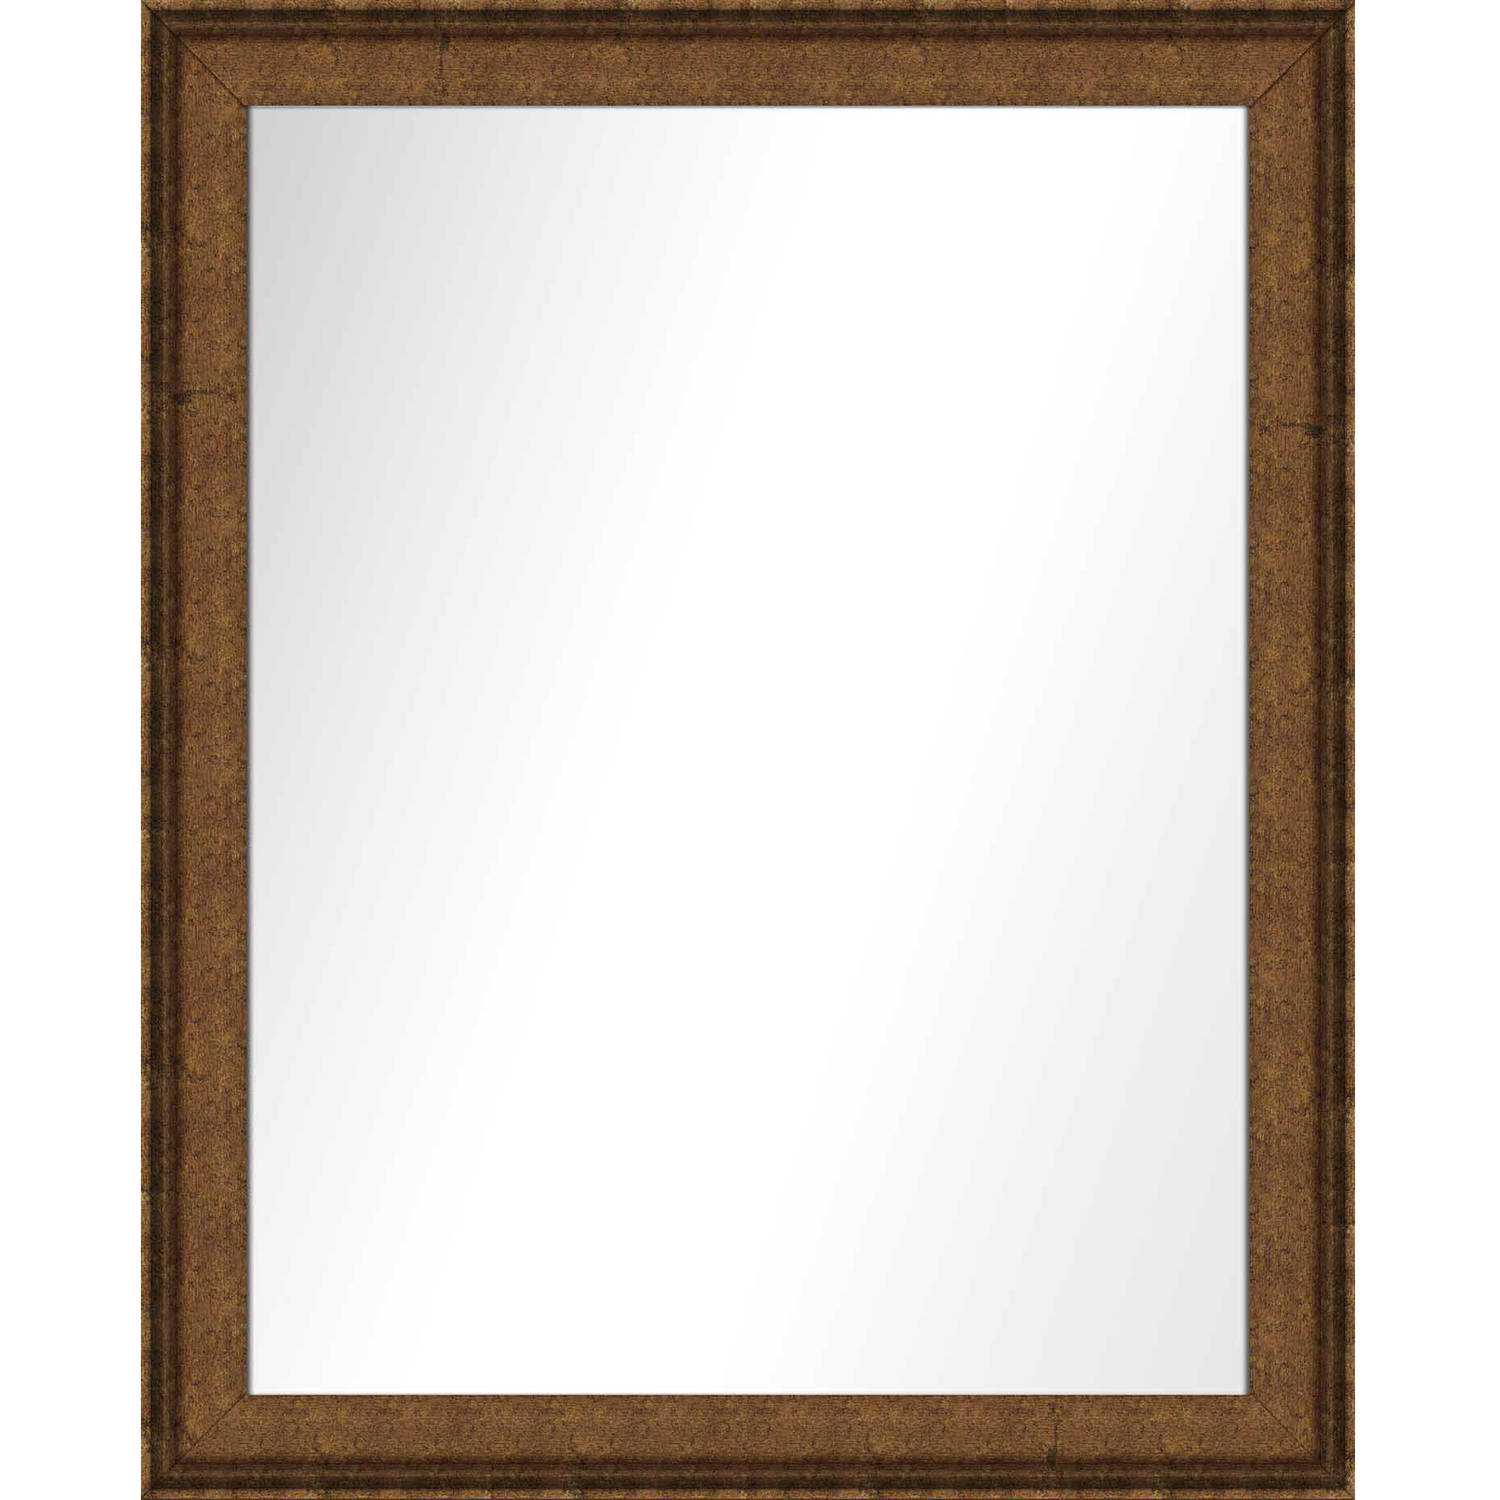 Vanity Mirror, Dark Gold, 25.5x31.5 by PTM Images